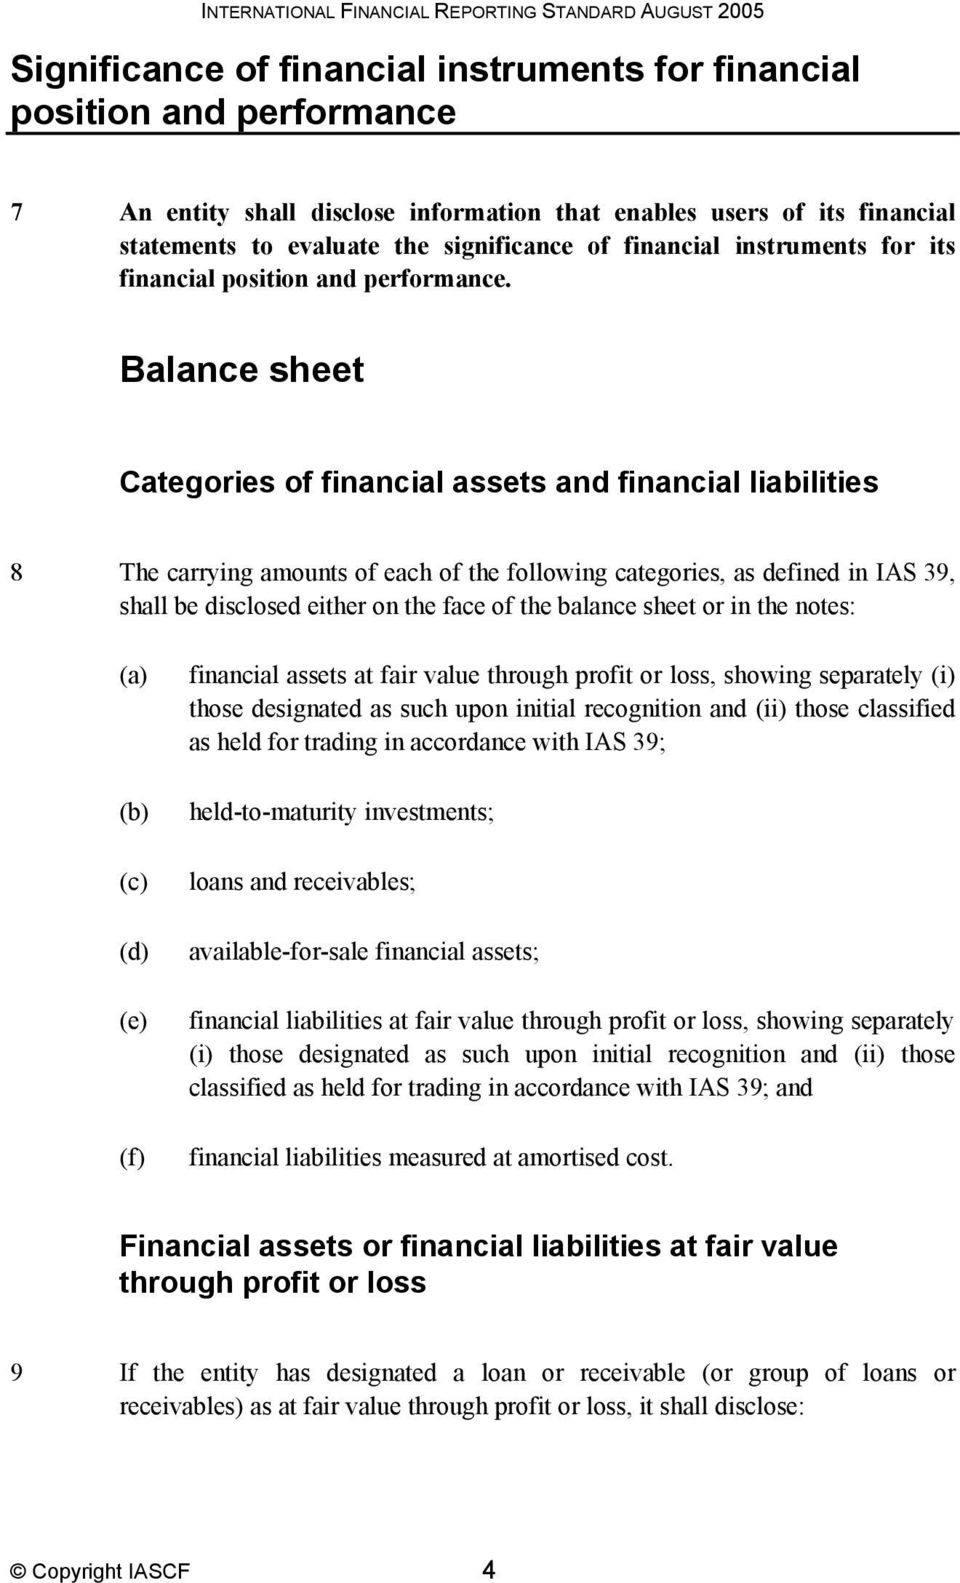 Balance sheet Categories of financial assets and financial liabilities 8 The carrying amounts of each of the following categories, as defined in IAS 39, shall be disclosed either on the face of the